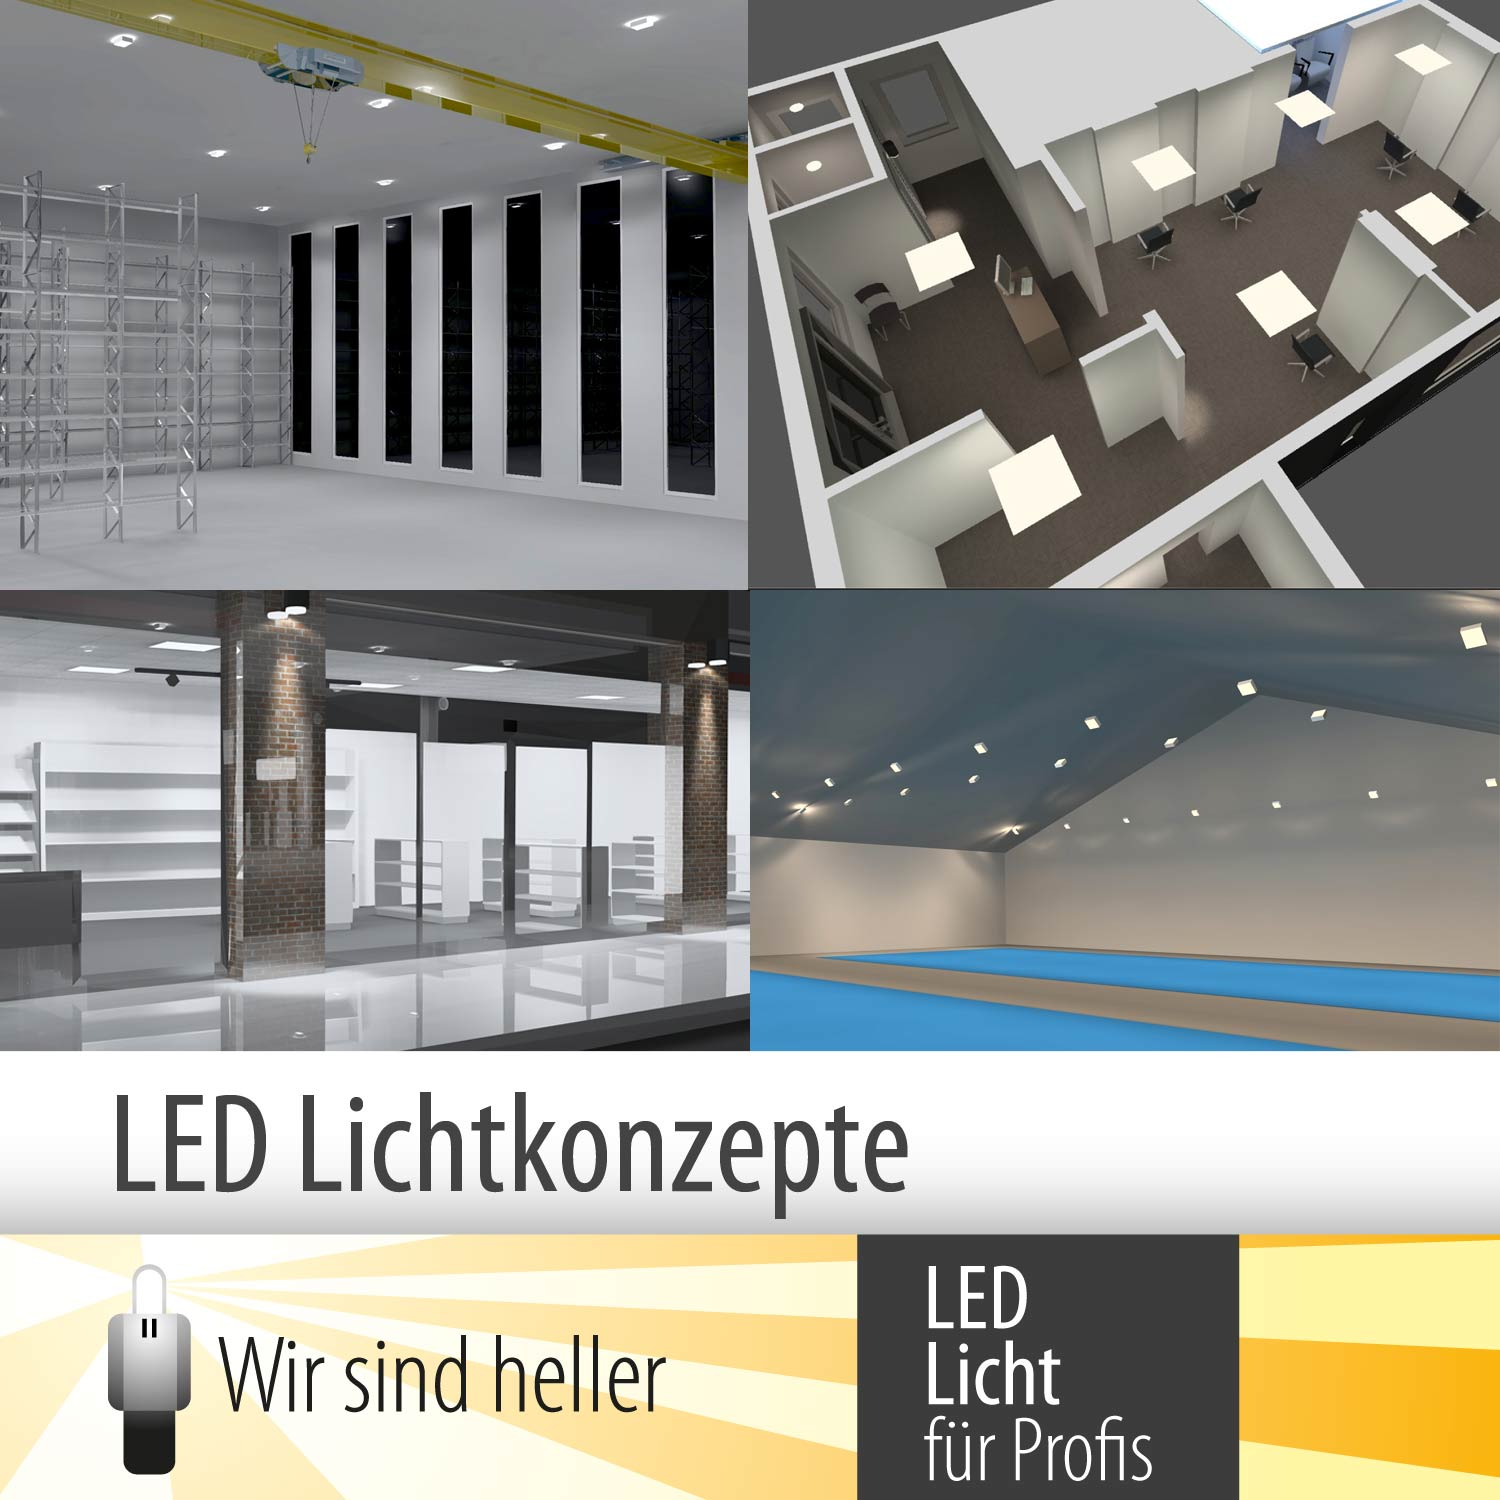 led beleuchtungsl sungen archives led beleuchtung und beleuchtungstechnik. Black Bedroom Furniture Sets. Home Design Ideas